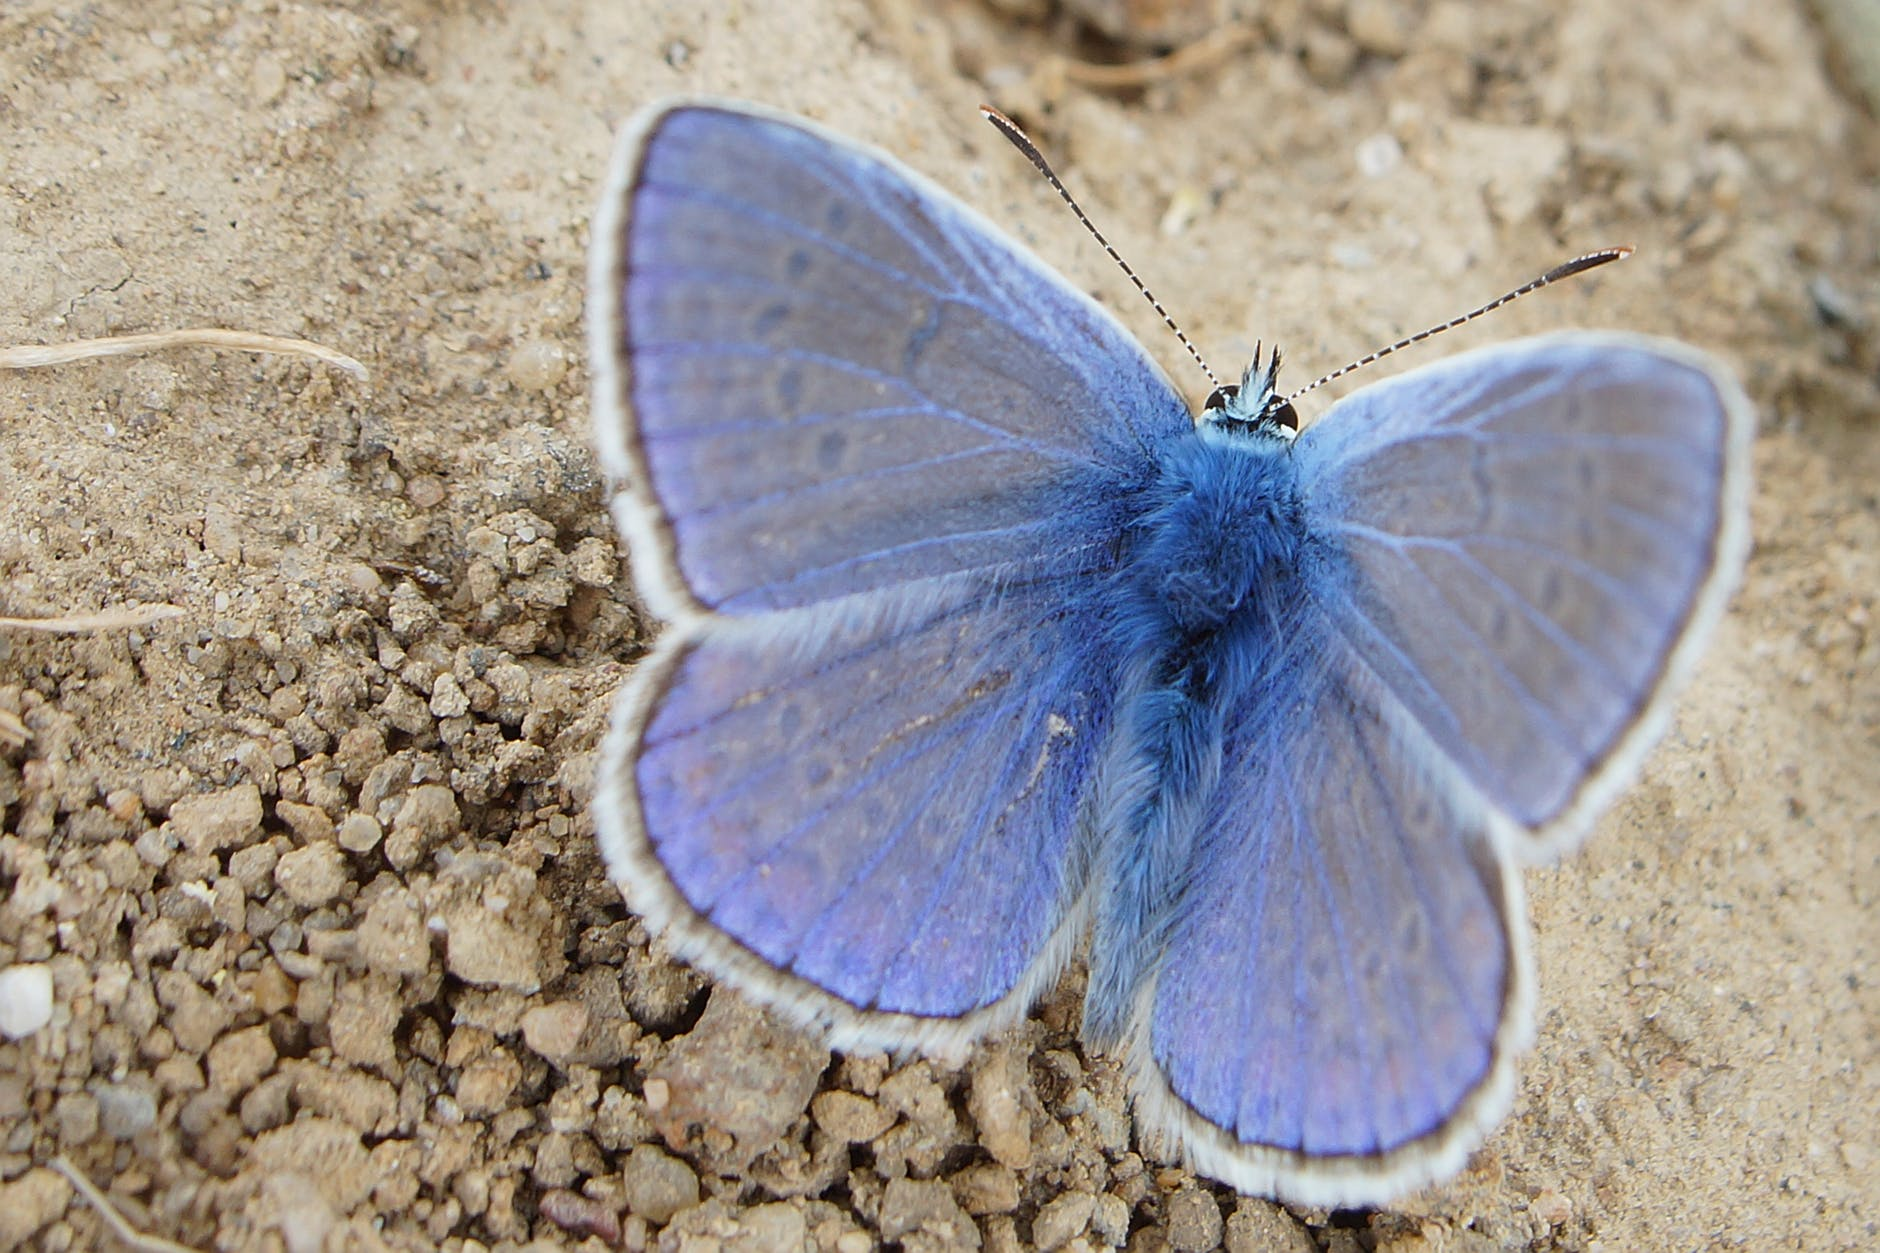 The thyroid is a butterfly-shaped organ